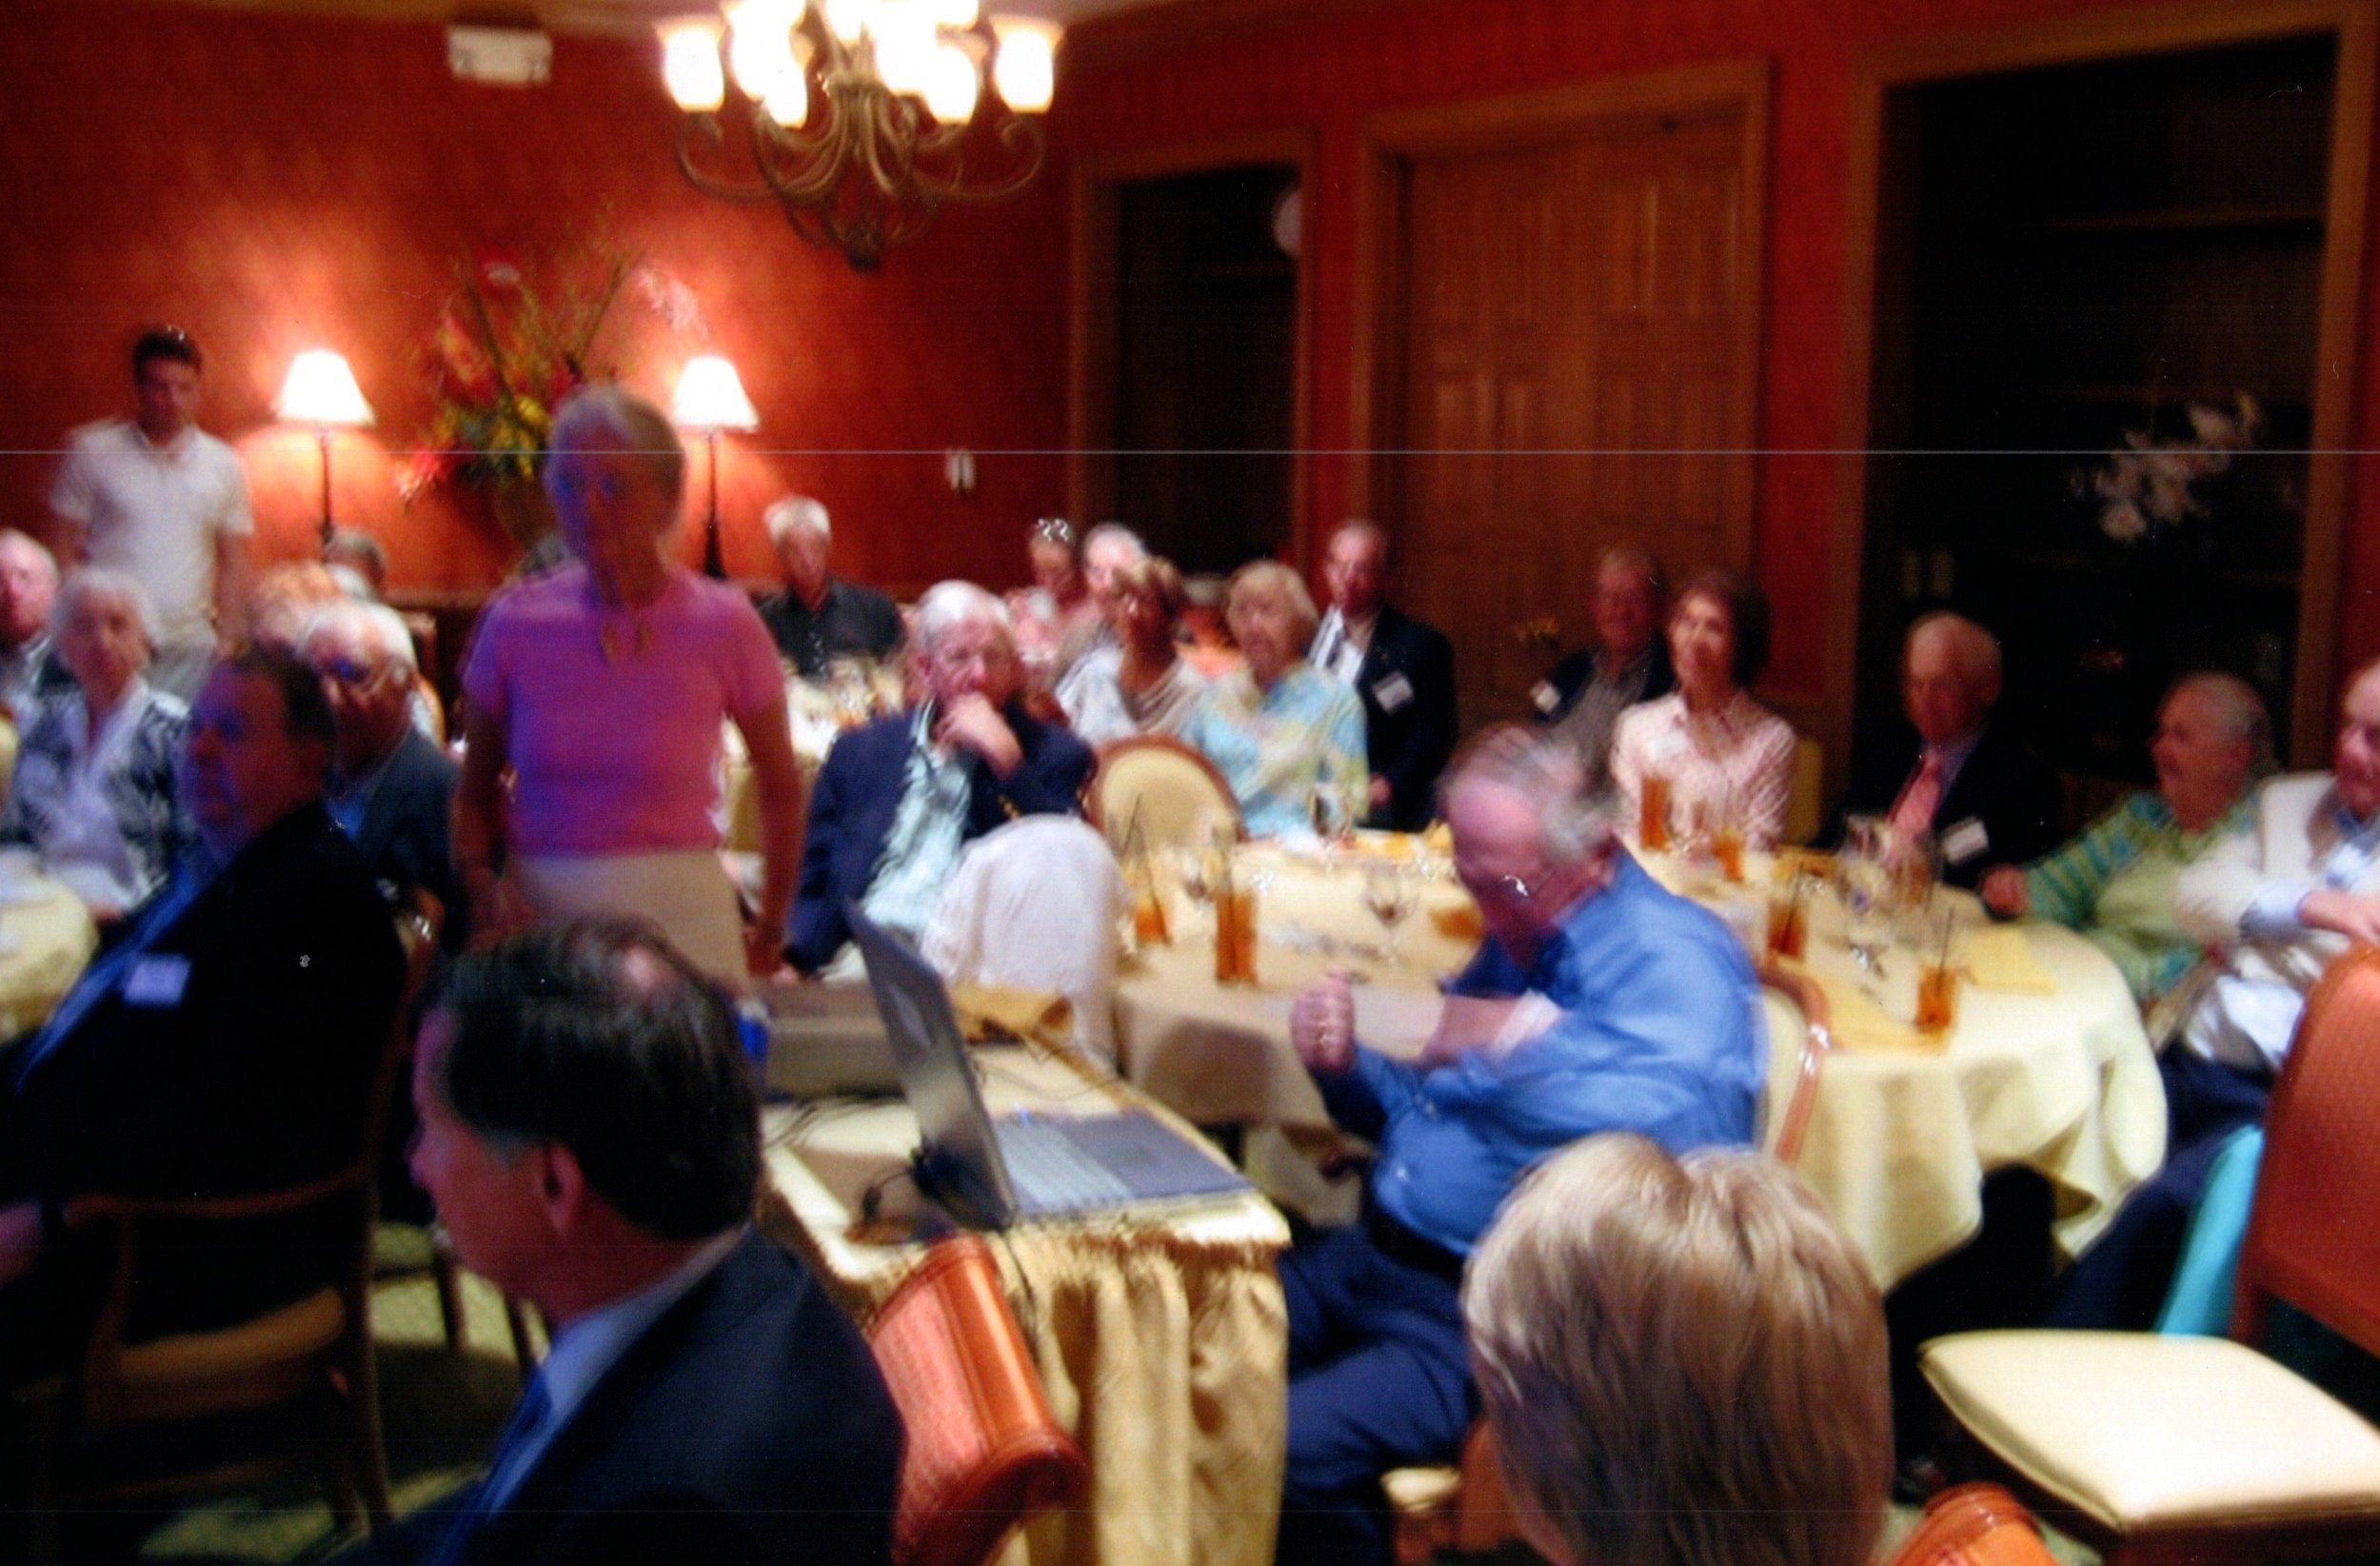 1_12_2009 - LUNCHEON WITH MOORE AFRICAN SLIDE SHOW 8.jpg